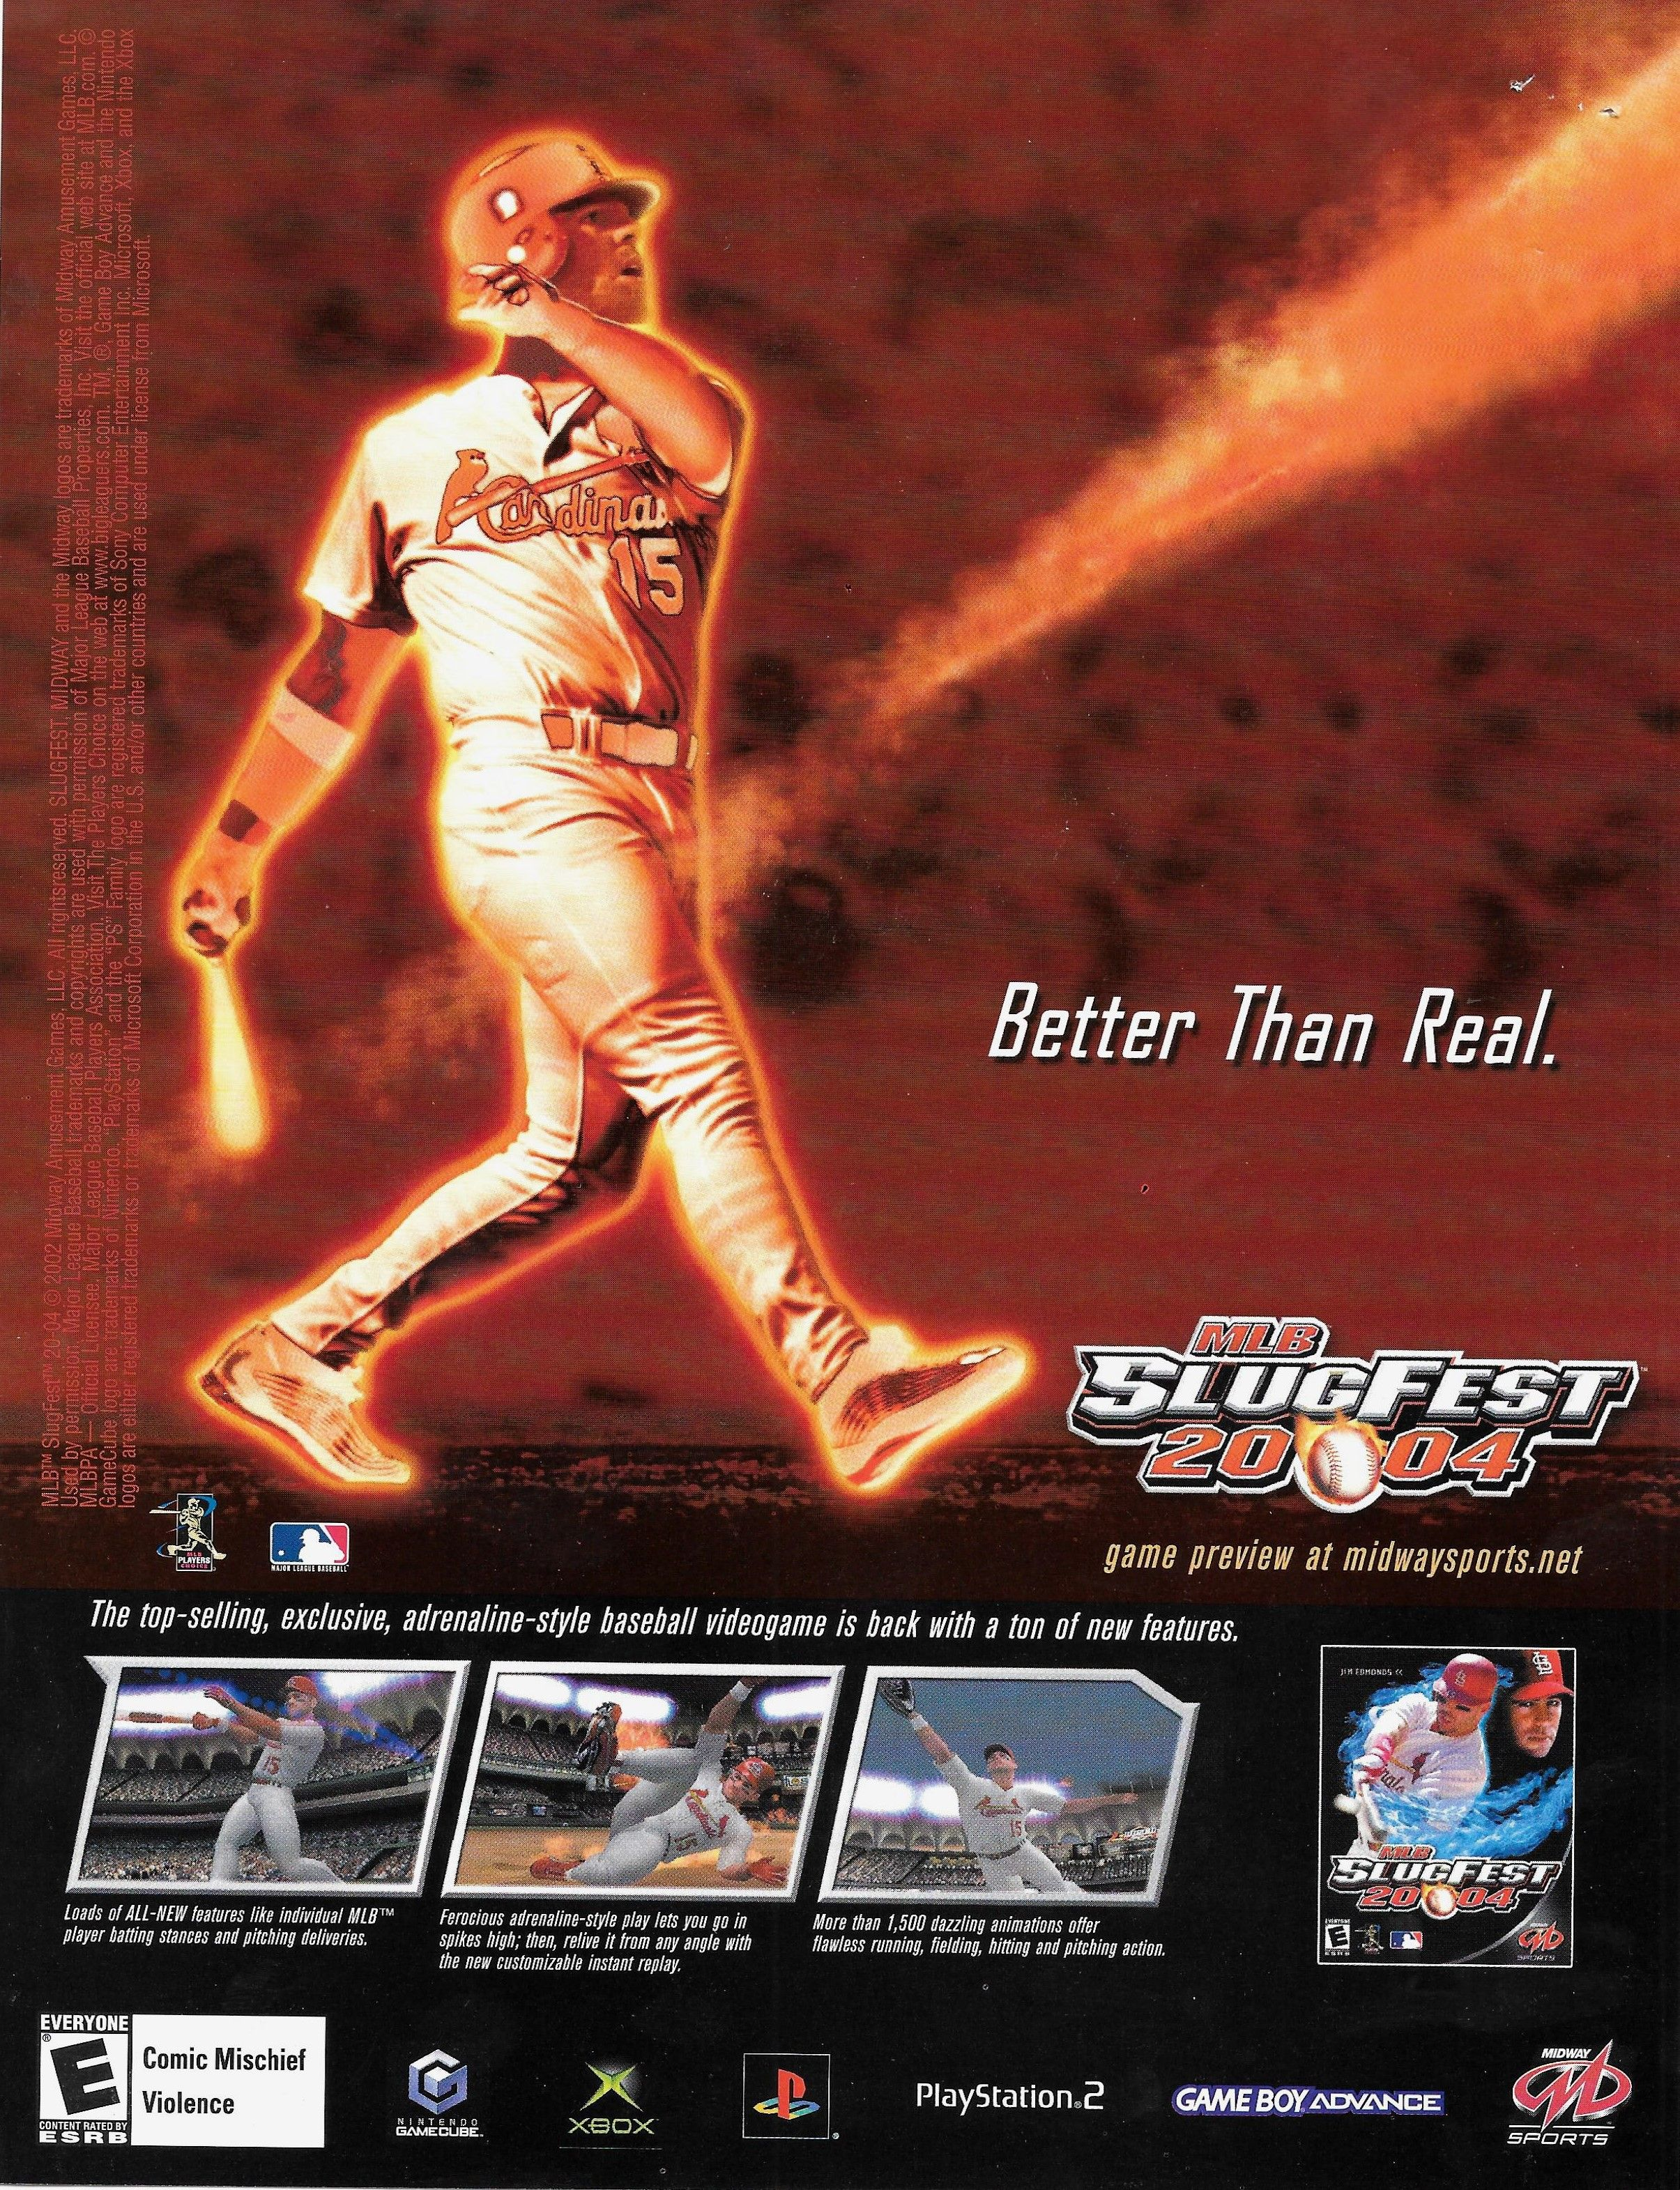 Mlb Slugfest 2004 With Images Xbox Video Games Nintendo